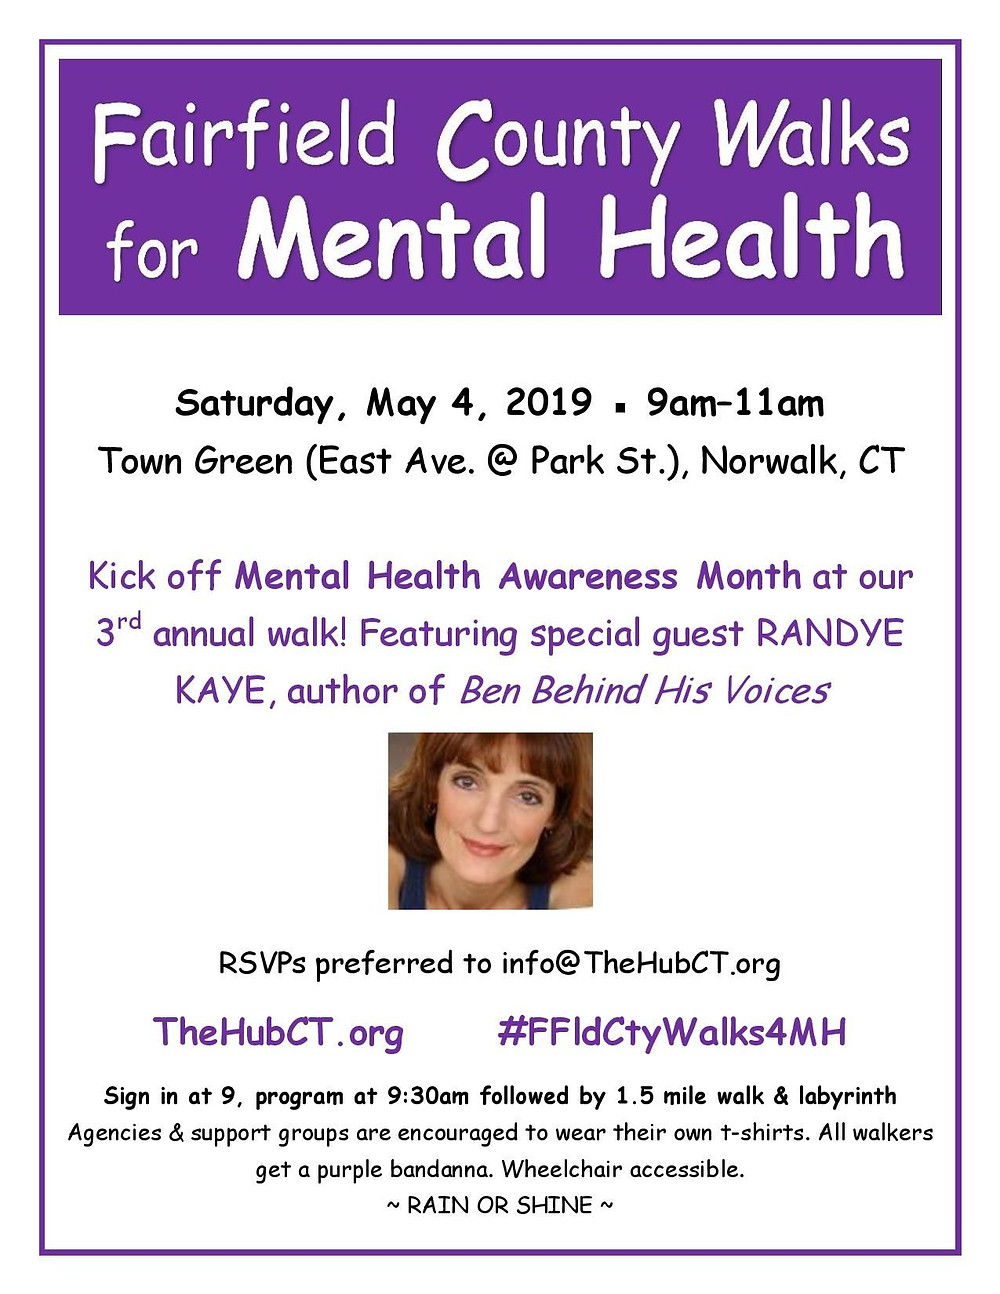 May 4, 9am-11am, flyer Fairfield County Walks for Mental Health